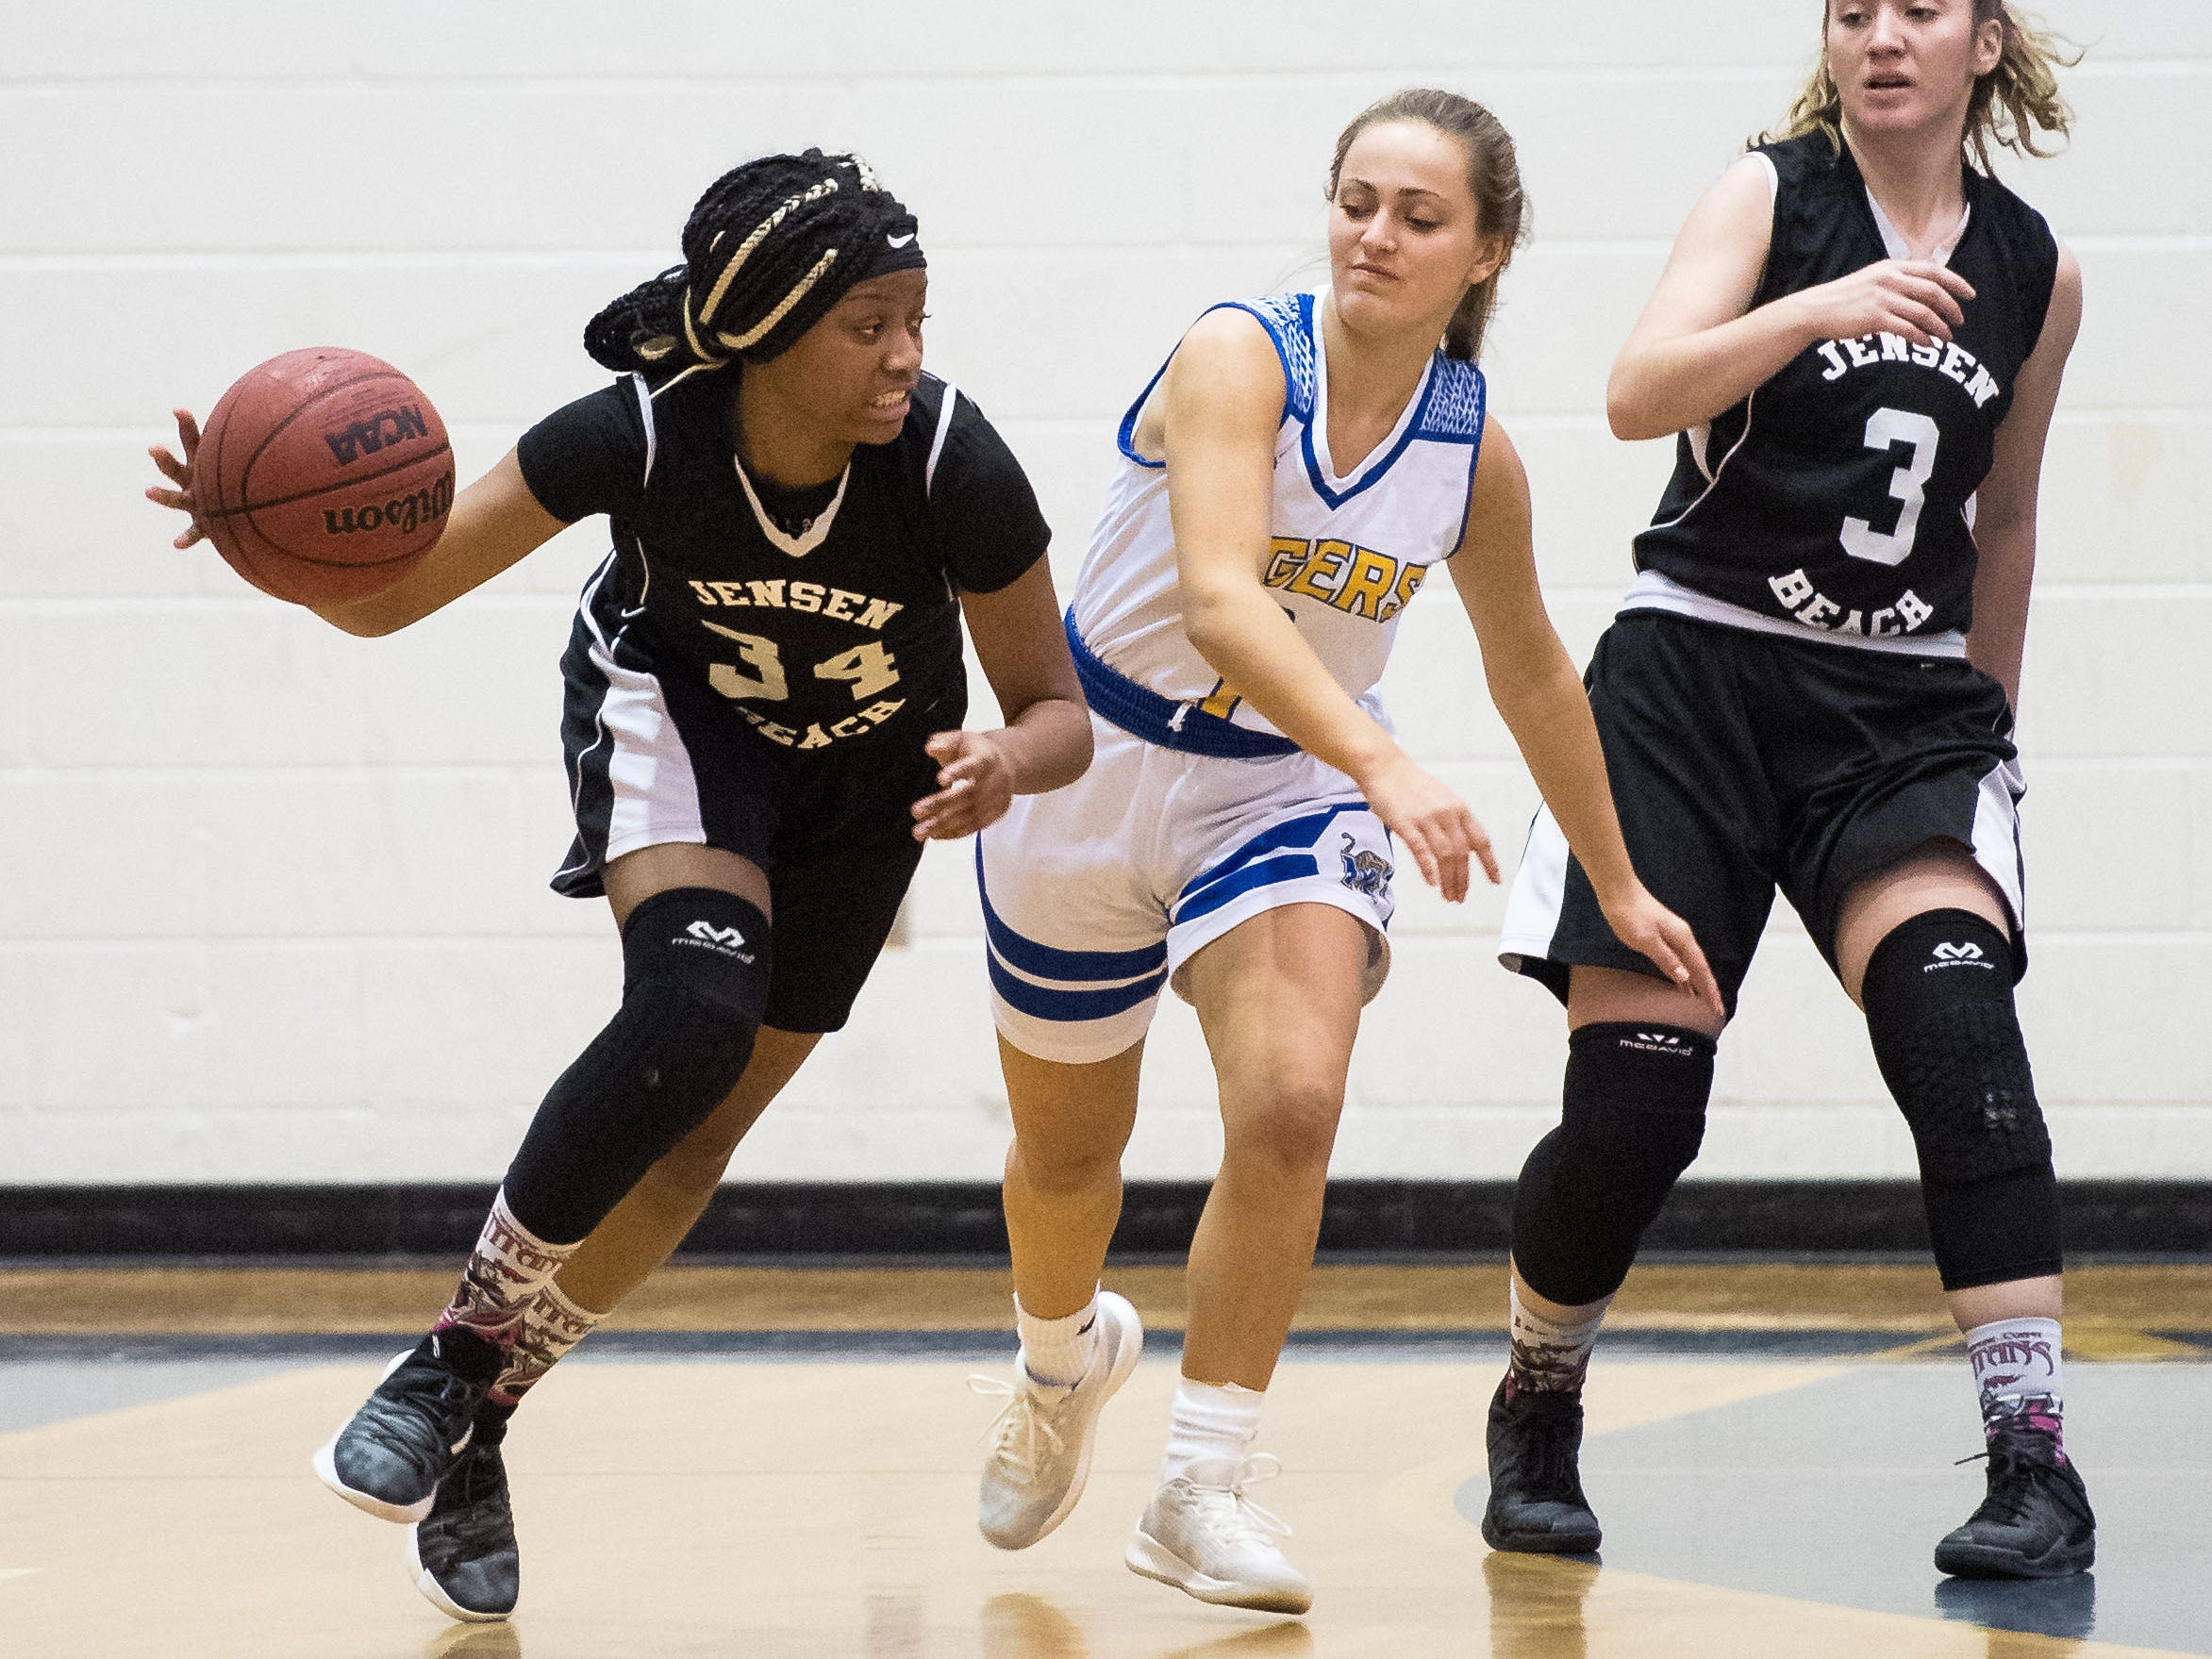 Jensen Beach's Jacqmea Britt tries to keep the ball away from Martin County's Allison Daniel (center), as Jensen teammate Hope Donow tries to help at right, during the third period of the high school girls basketball game Tuesday, Jan. 22, 2019, at Martin County High School in Stuart.